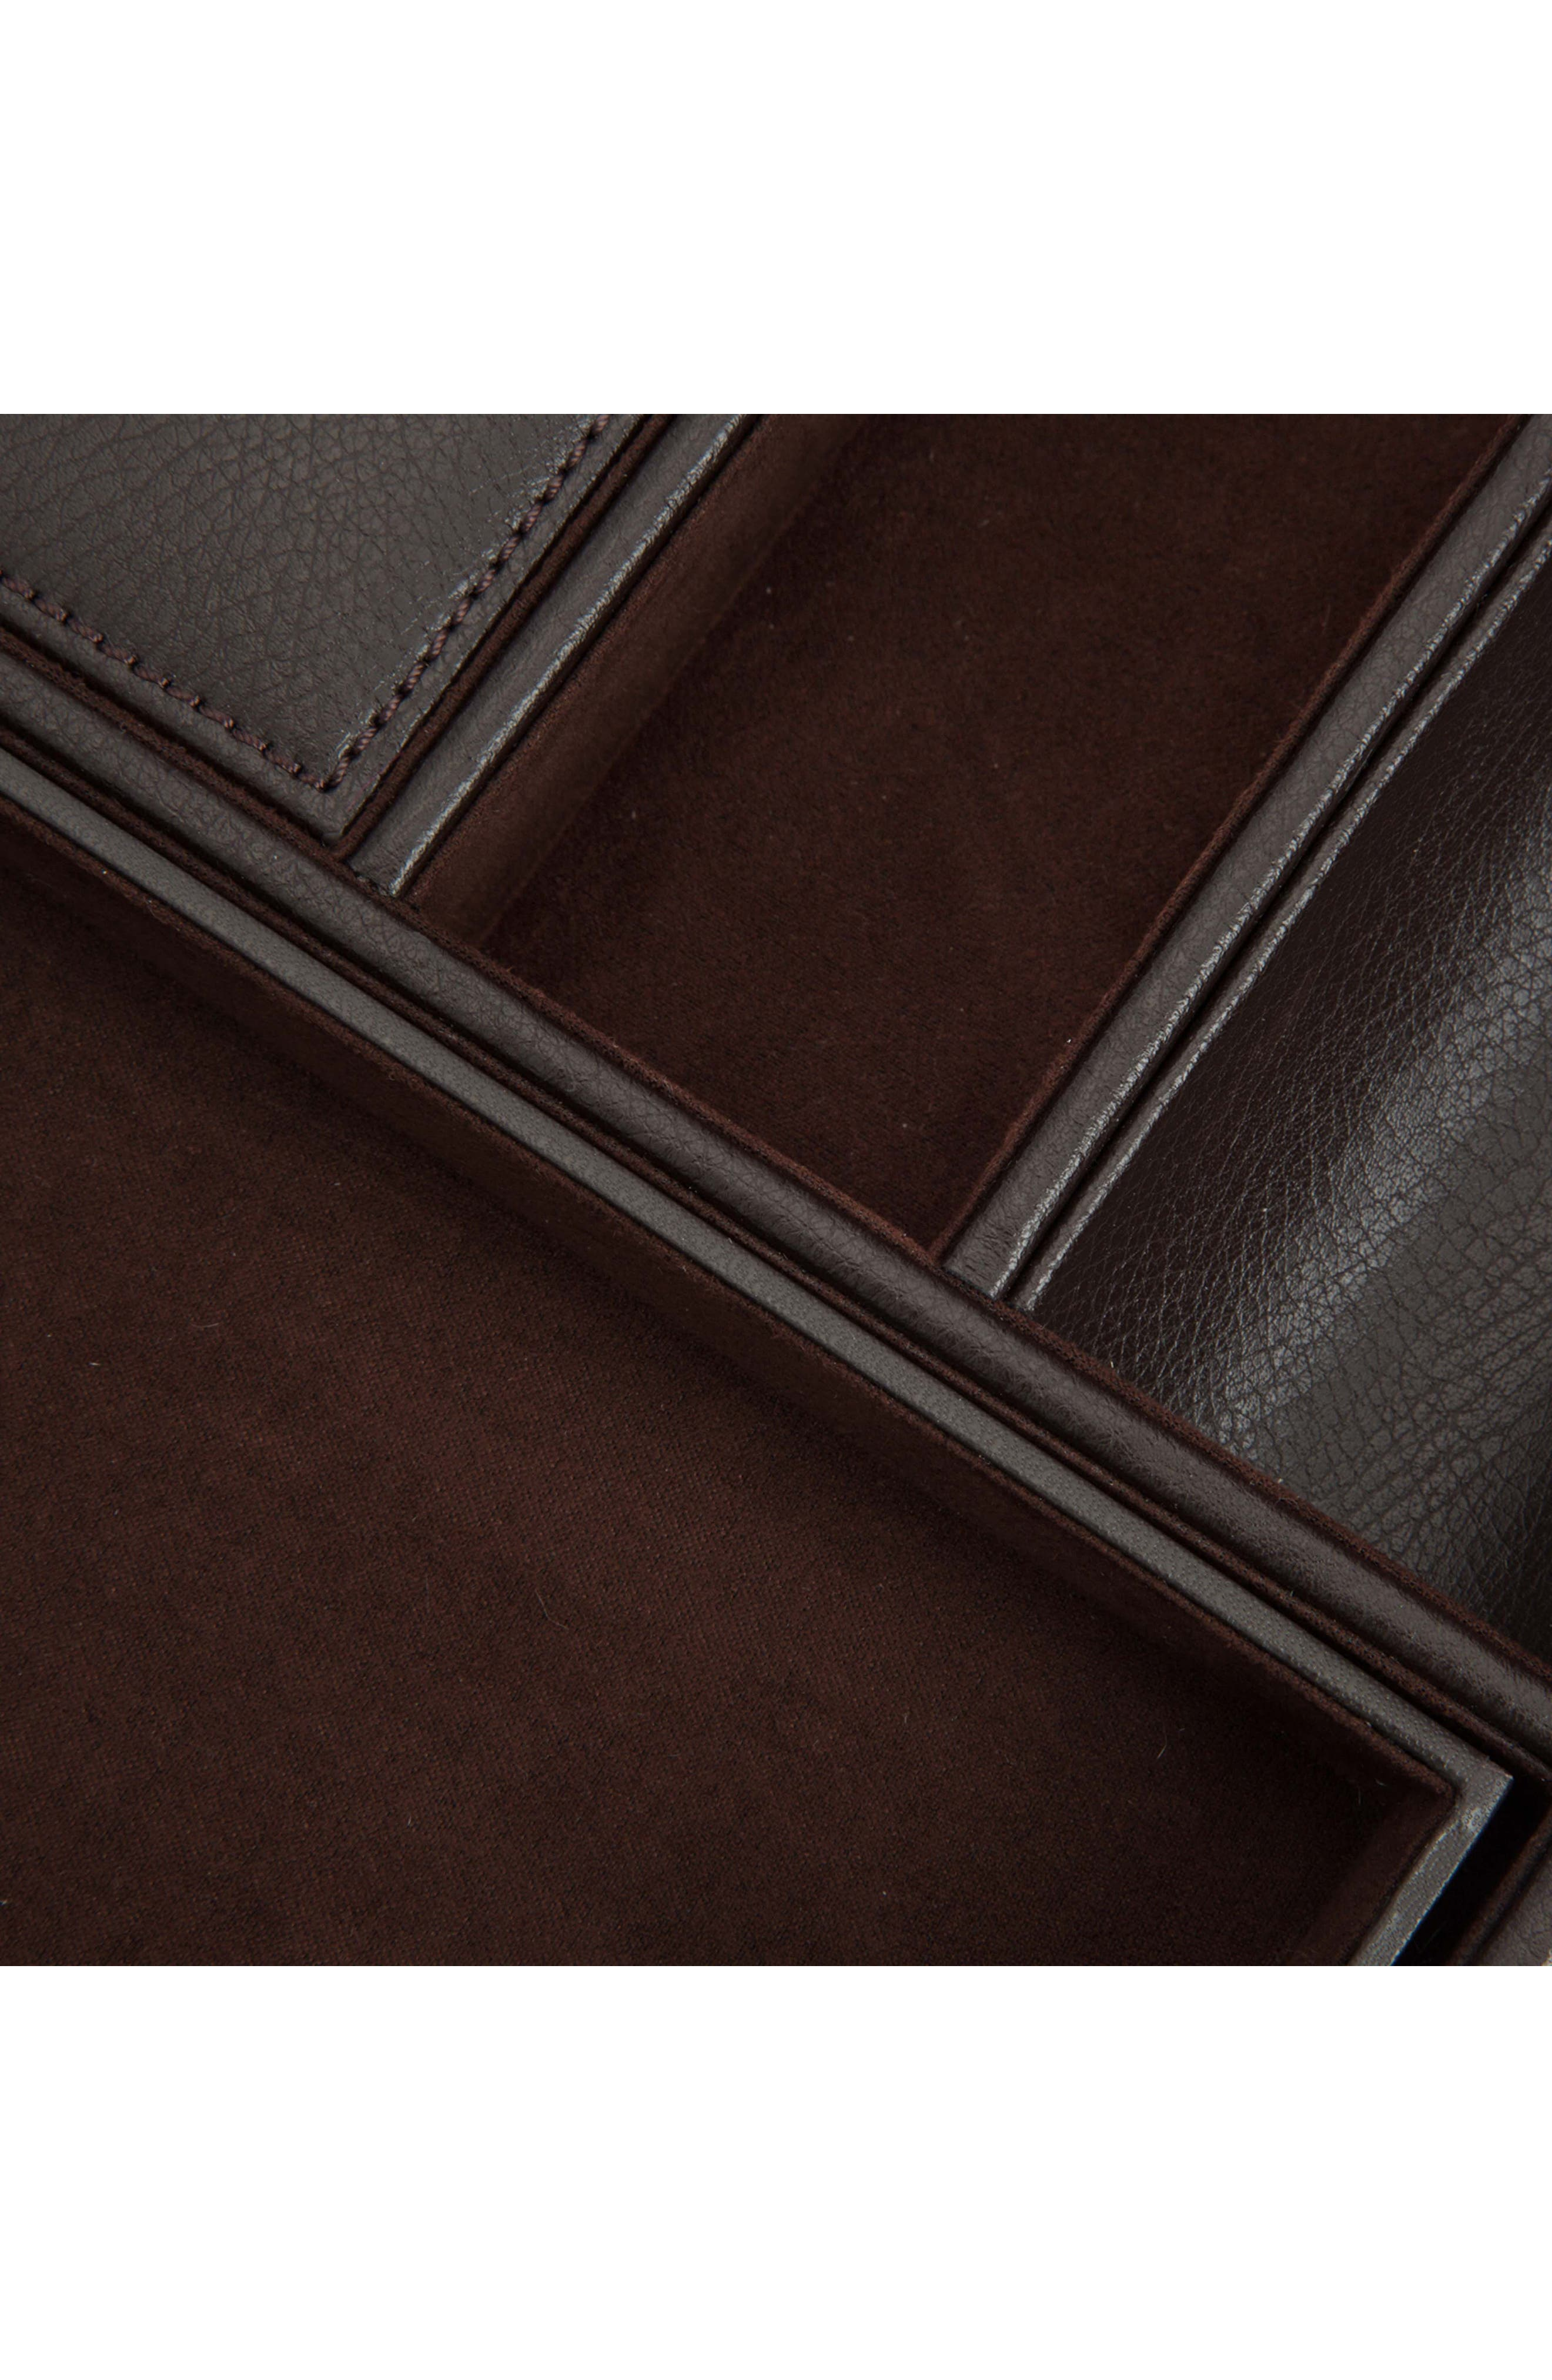 Blake Valet Tray & Watch Cuff,                             Alternate thumbnail 4, color,                             BROWN